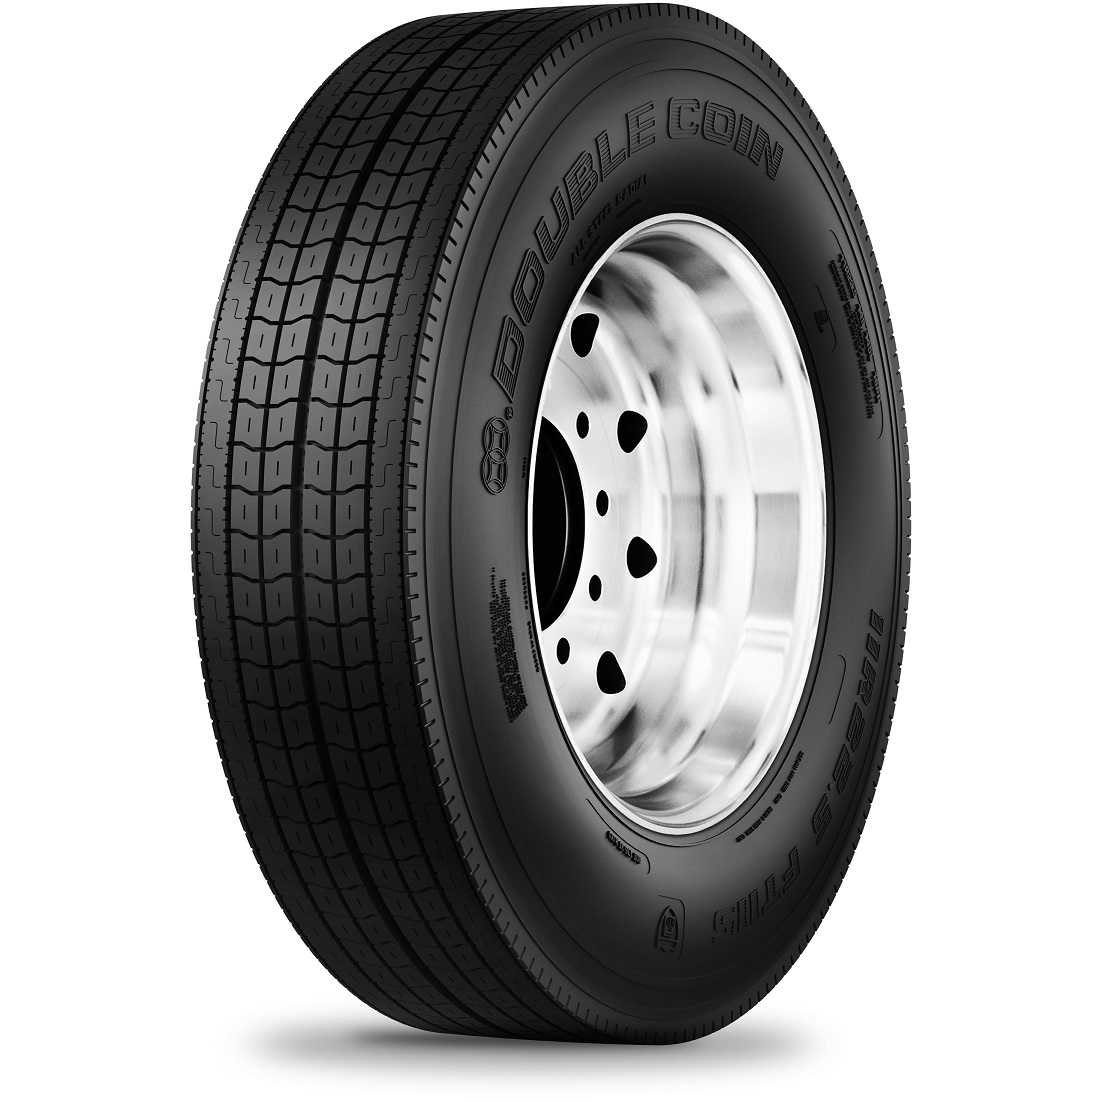 2 Sizes Added to Double Coin Mixed Service Tires